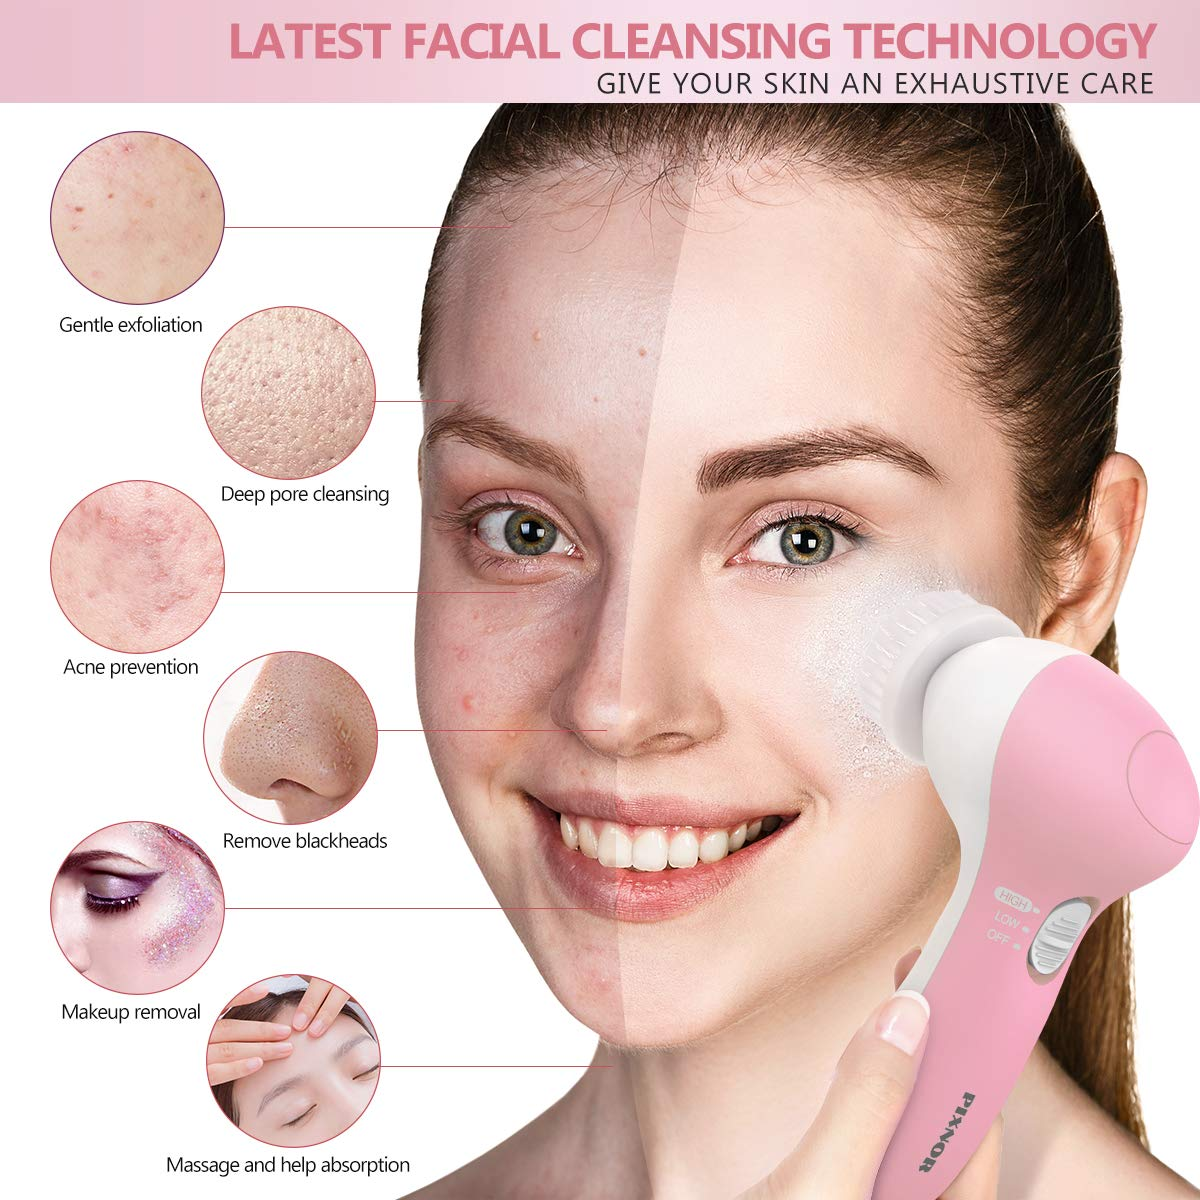 Facial Brush, Waterproof Facial Cleansing Brush Spin Brush with 7 Brush Heads - Soft Pink